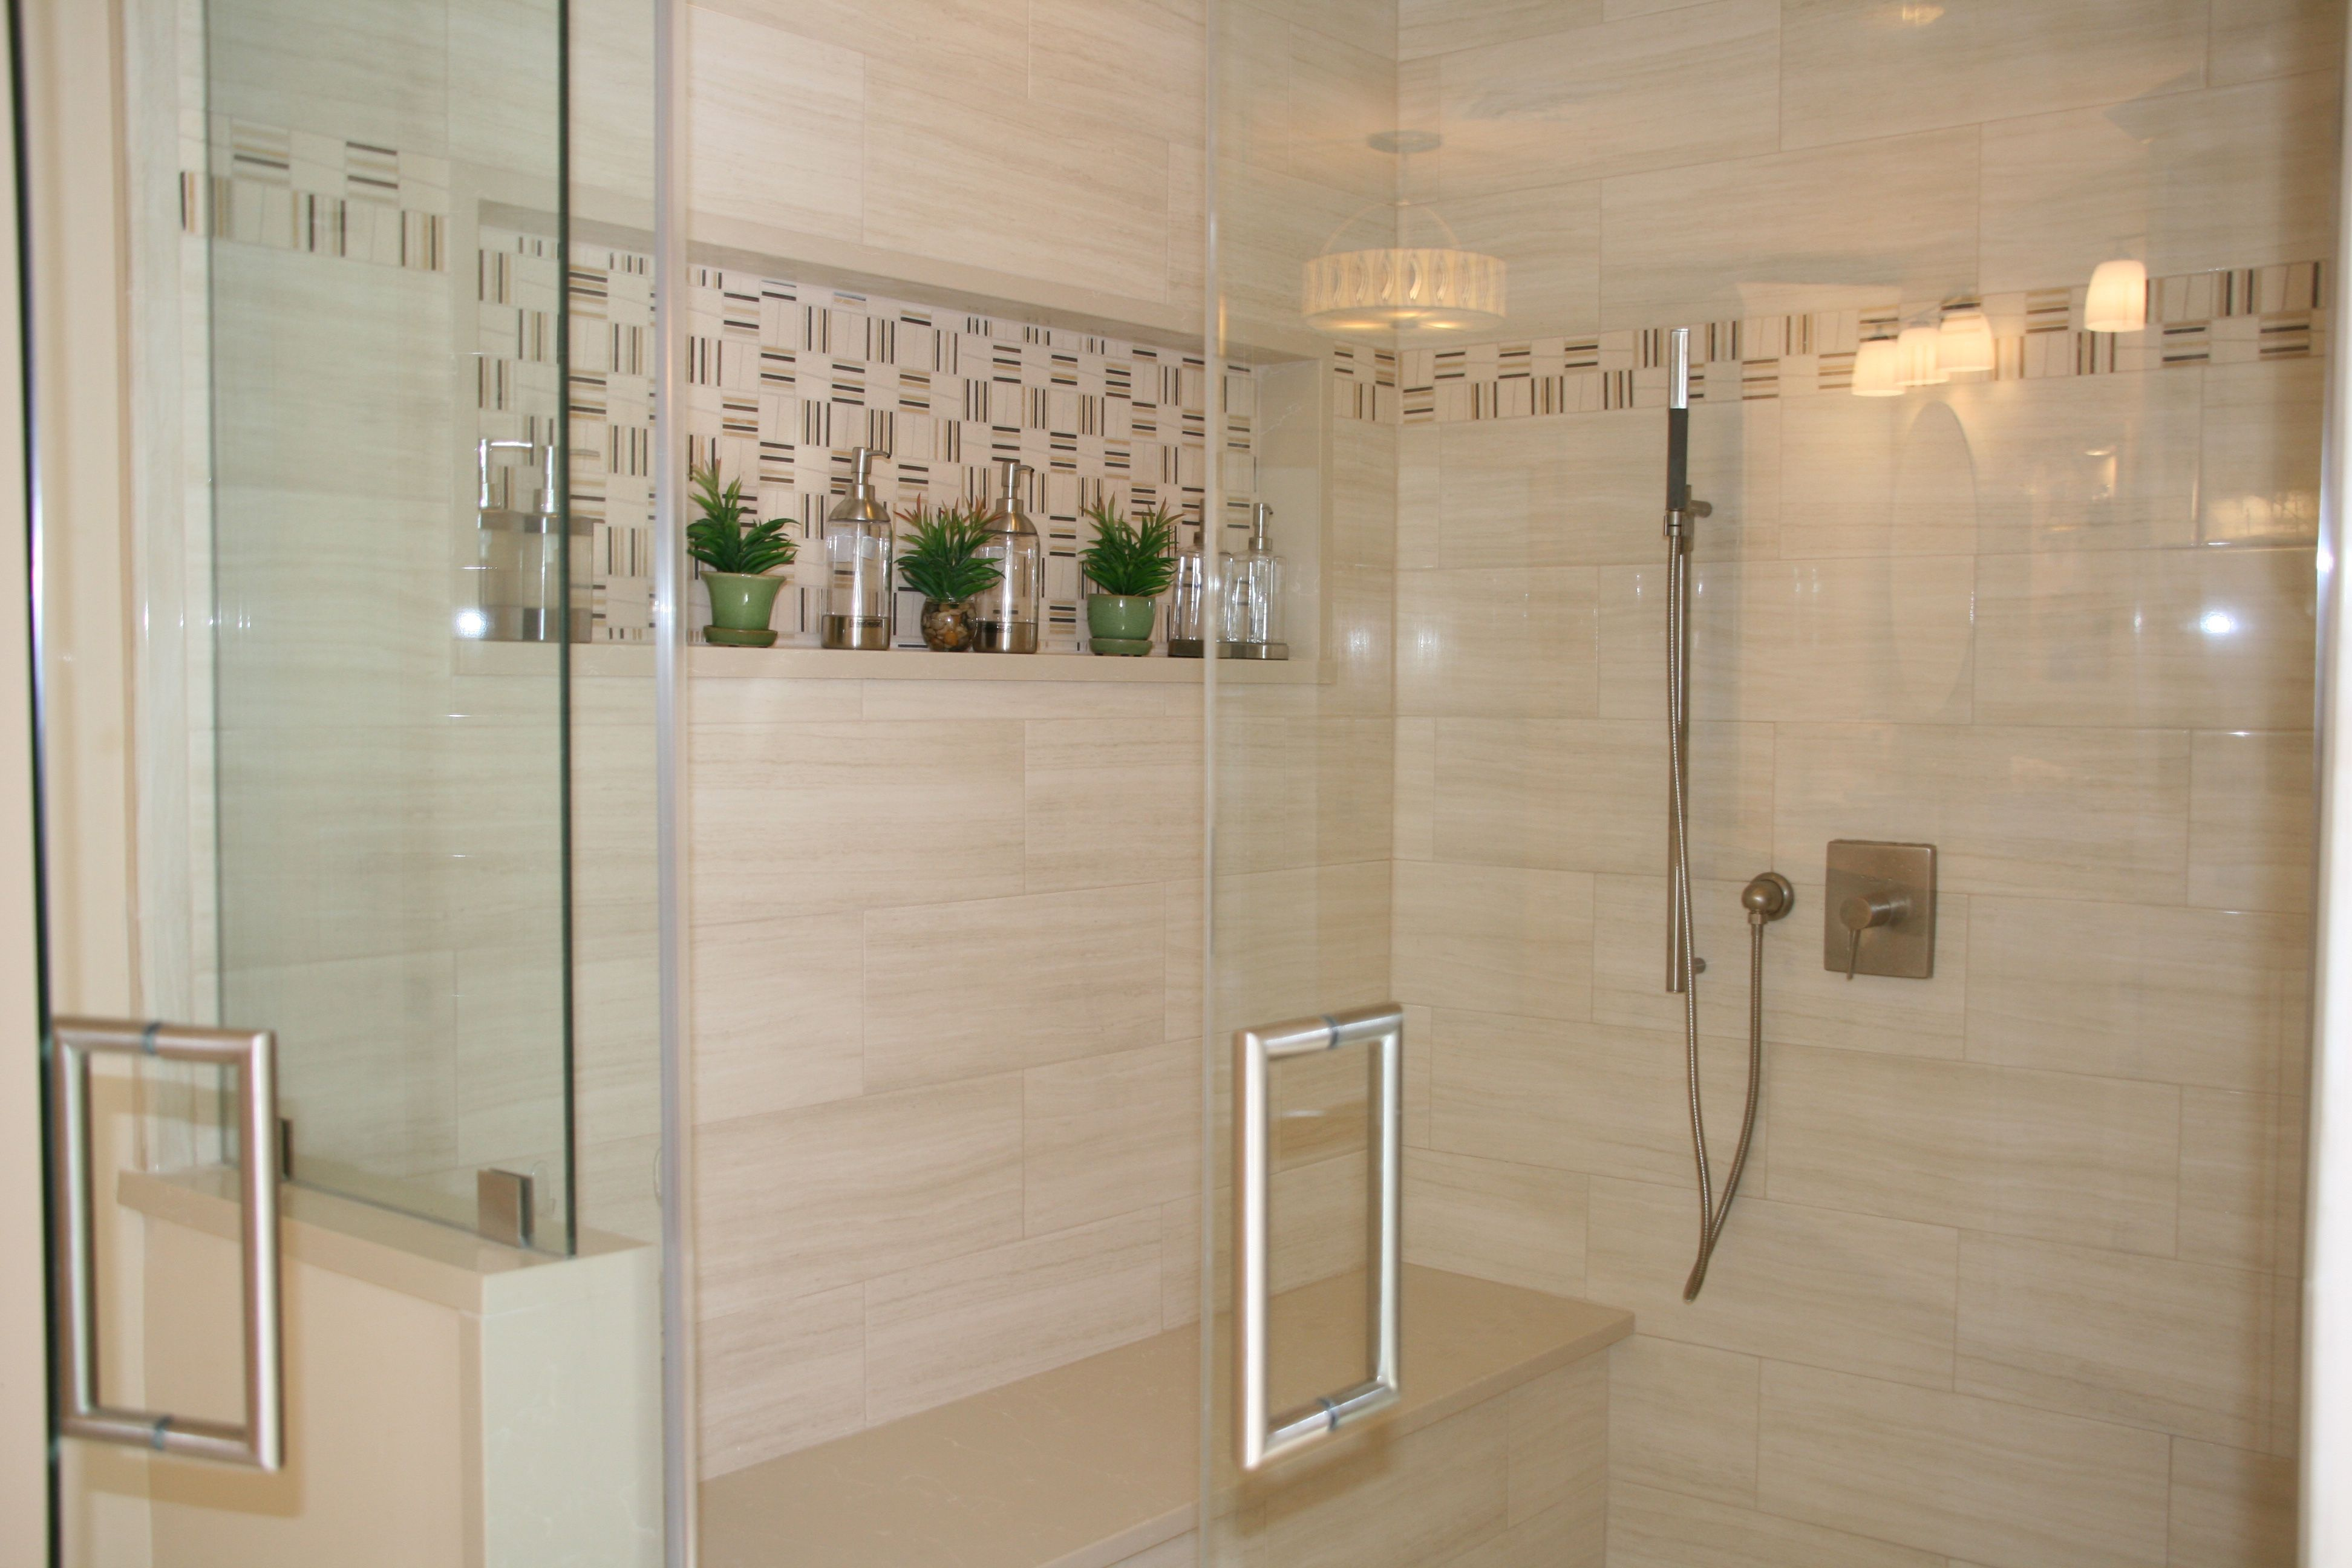 Bathroom Remodeling Photos Alure Home Improvements Bathroom Ideas - Alure bathroom remodeling